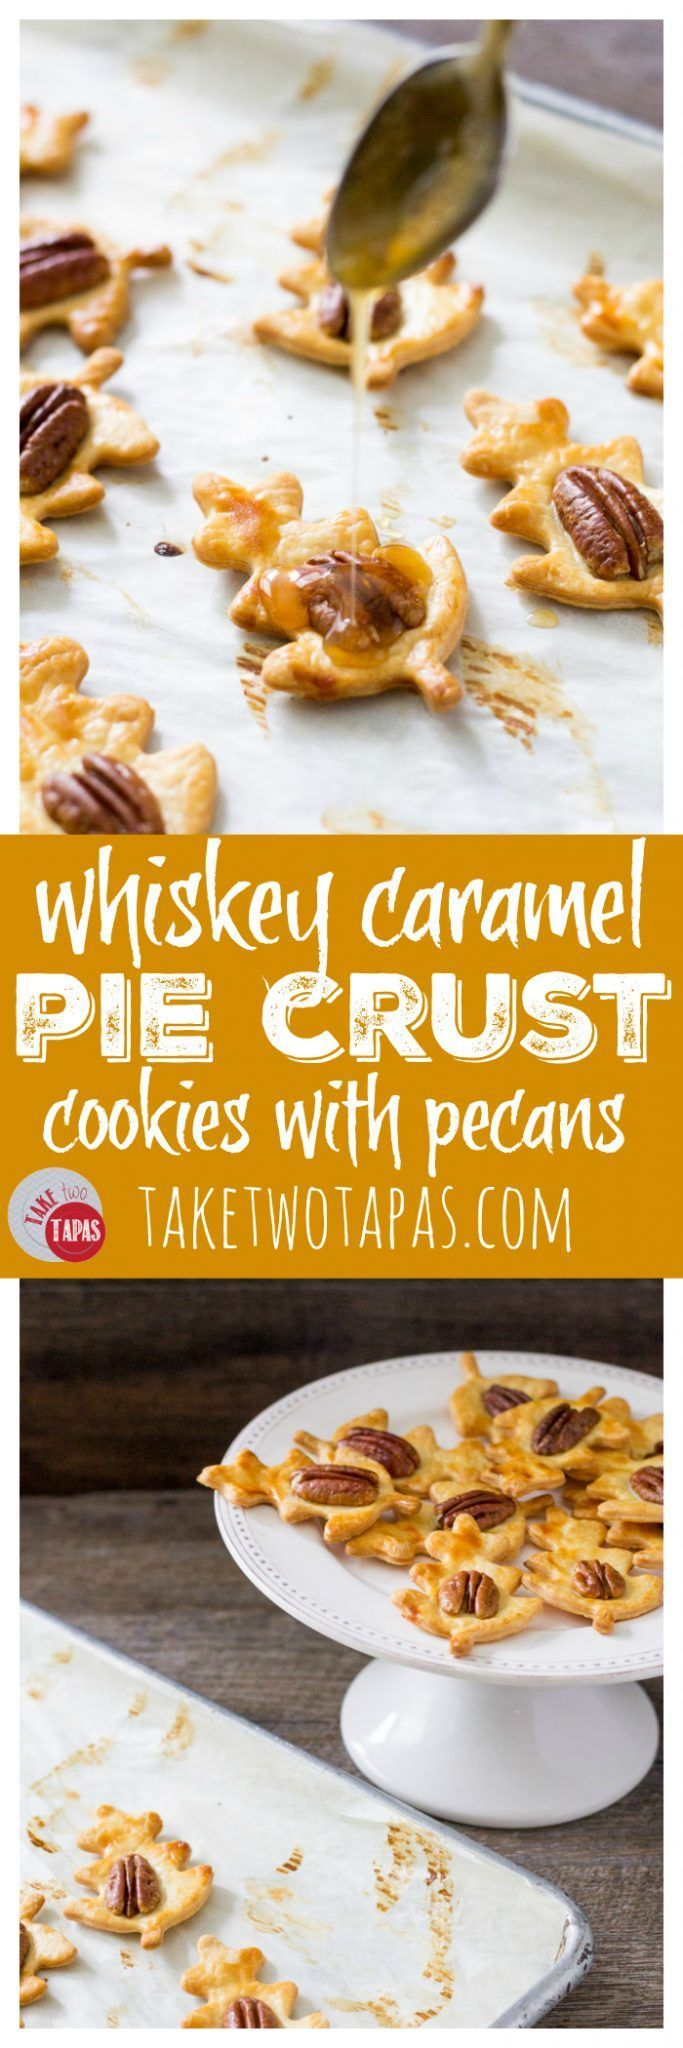 Simple and flaky pie crust is transformed into easy pie crust cookies topped with a pecan and drizzled with a whiskey caramel sauce! Cut them into your favorite shape to fit your holiday or occasion. Whiskey Caramel Pie Crust Cookie Recipe | Take Two Tapas